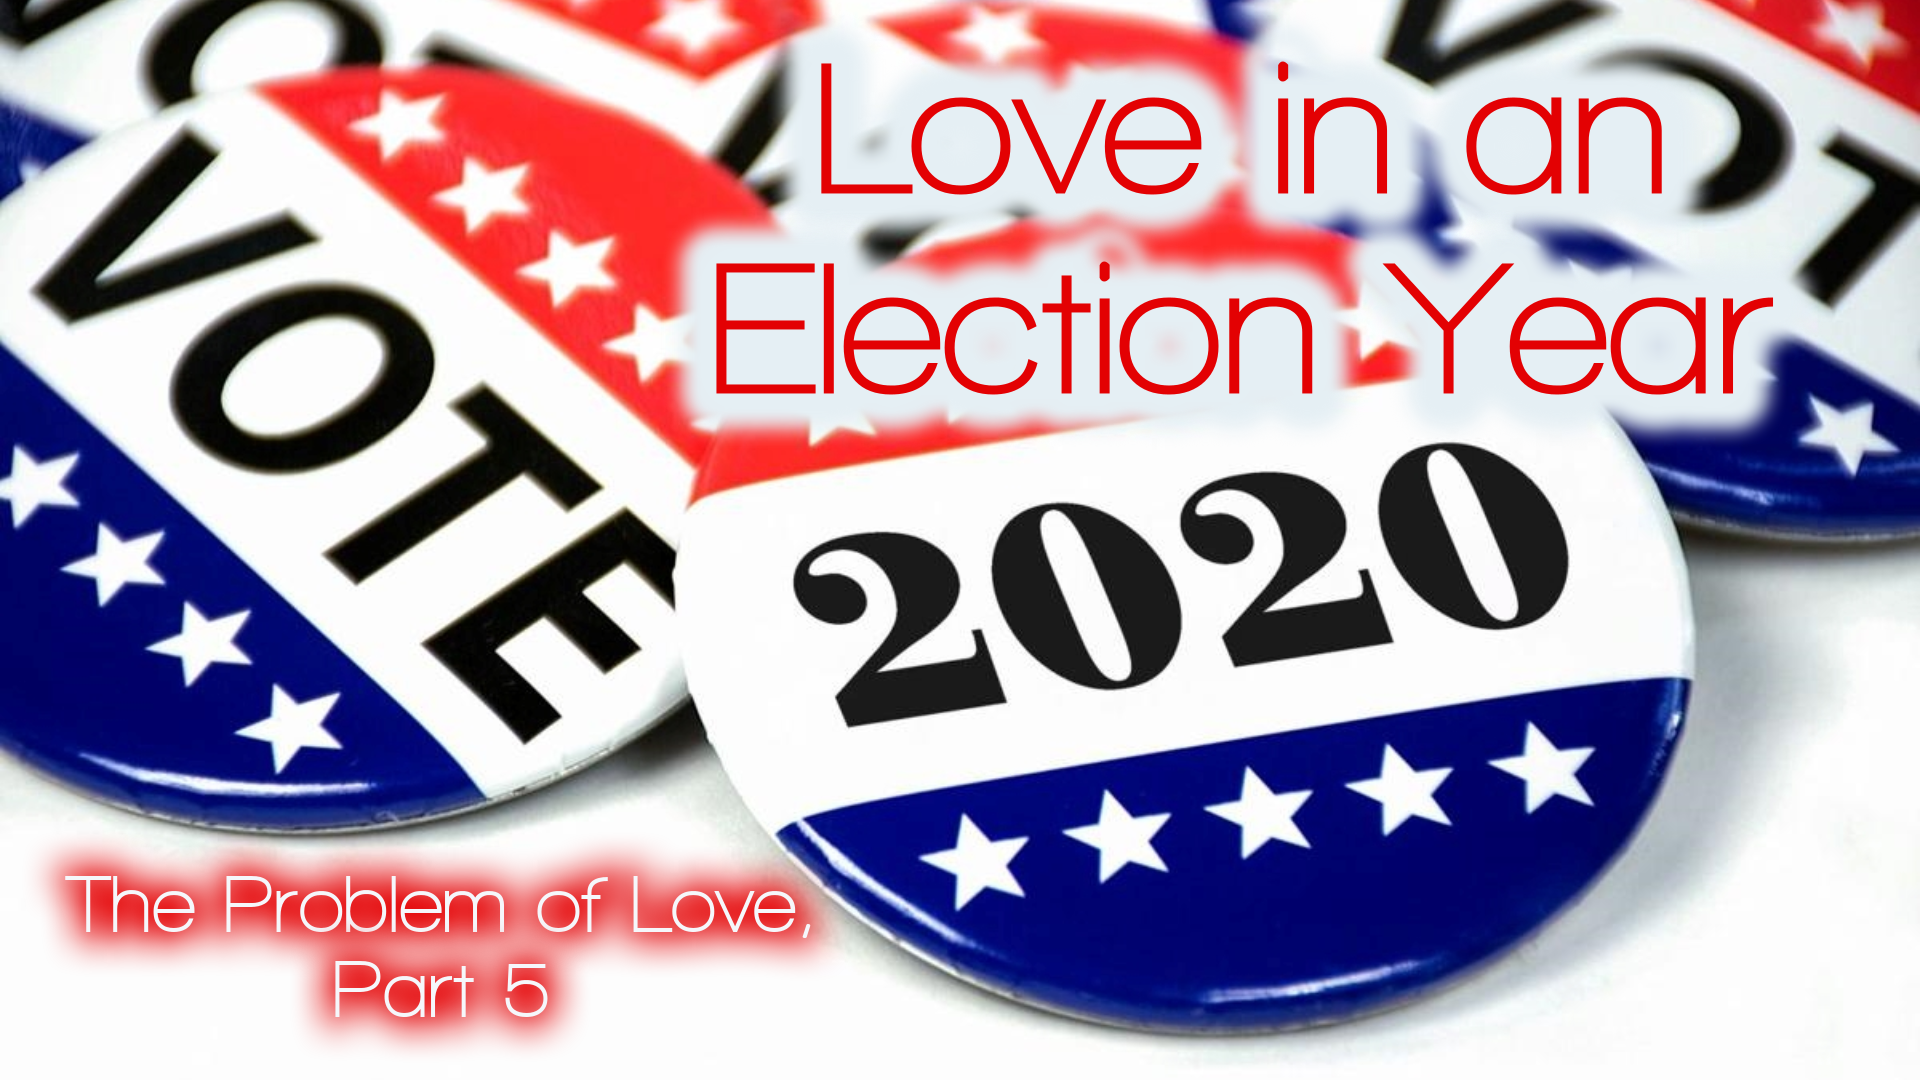 The Problem of Love, Part 5: Love in an Election Year